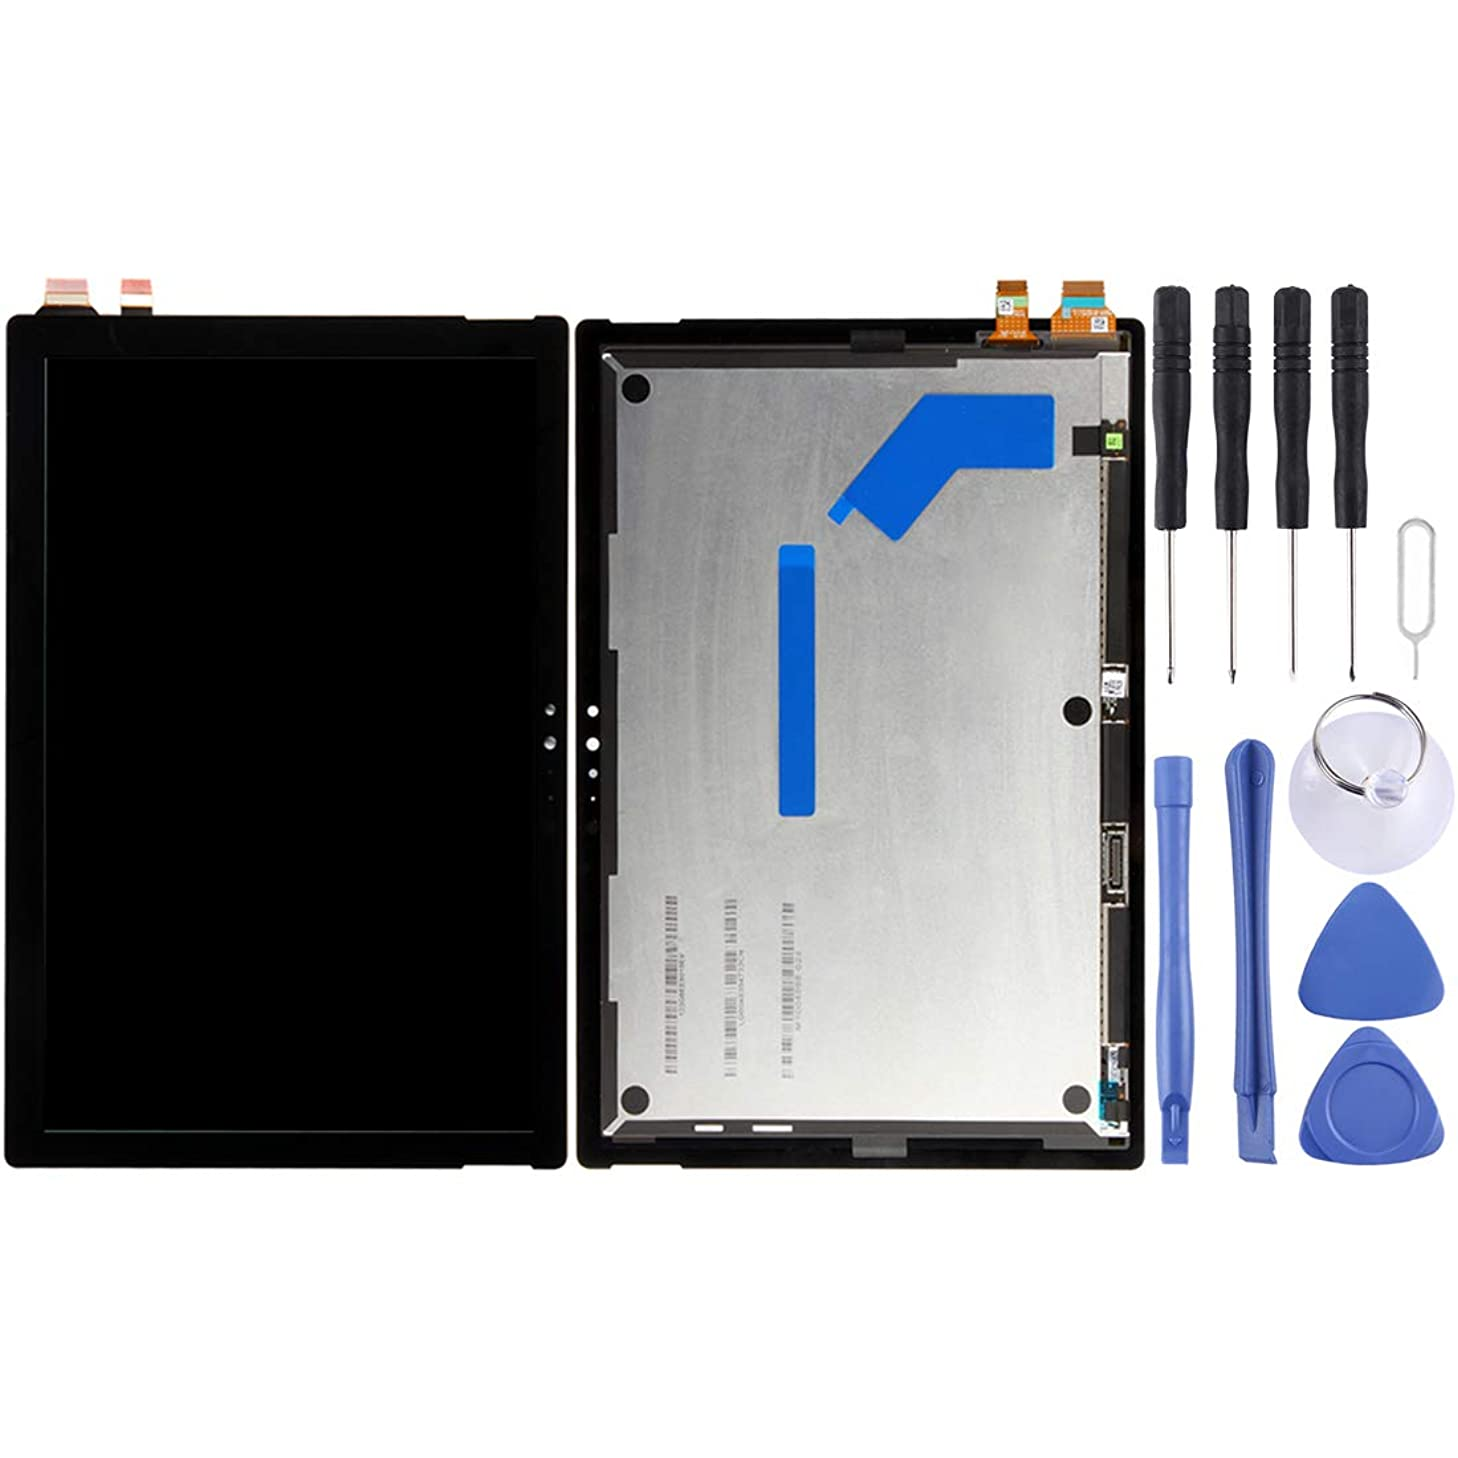 Huamentallice LCD Screen Repaire&Spare Parts LCD Screen and Digitizer Full Assembly for Microsoft Surface Pro 5 1796 LP123WQ1(SP)(A2) 12.3 inch (Black) (Color : Black)